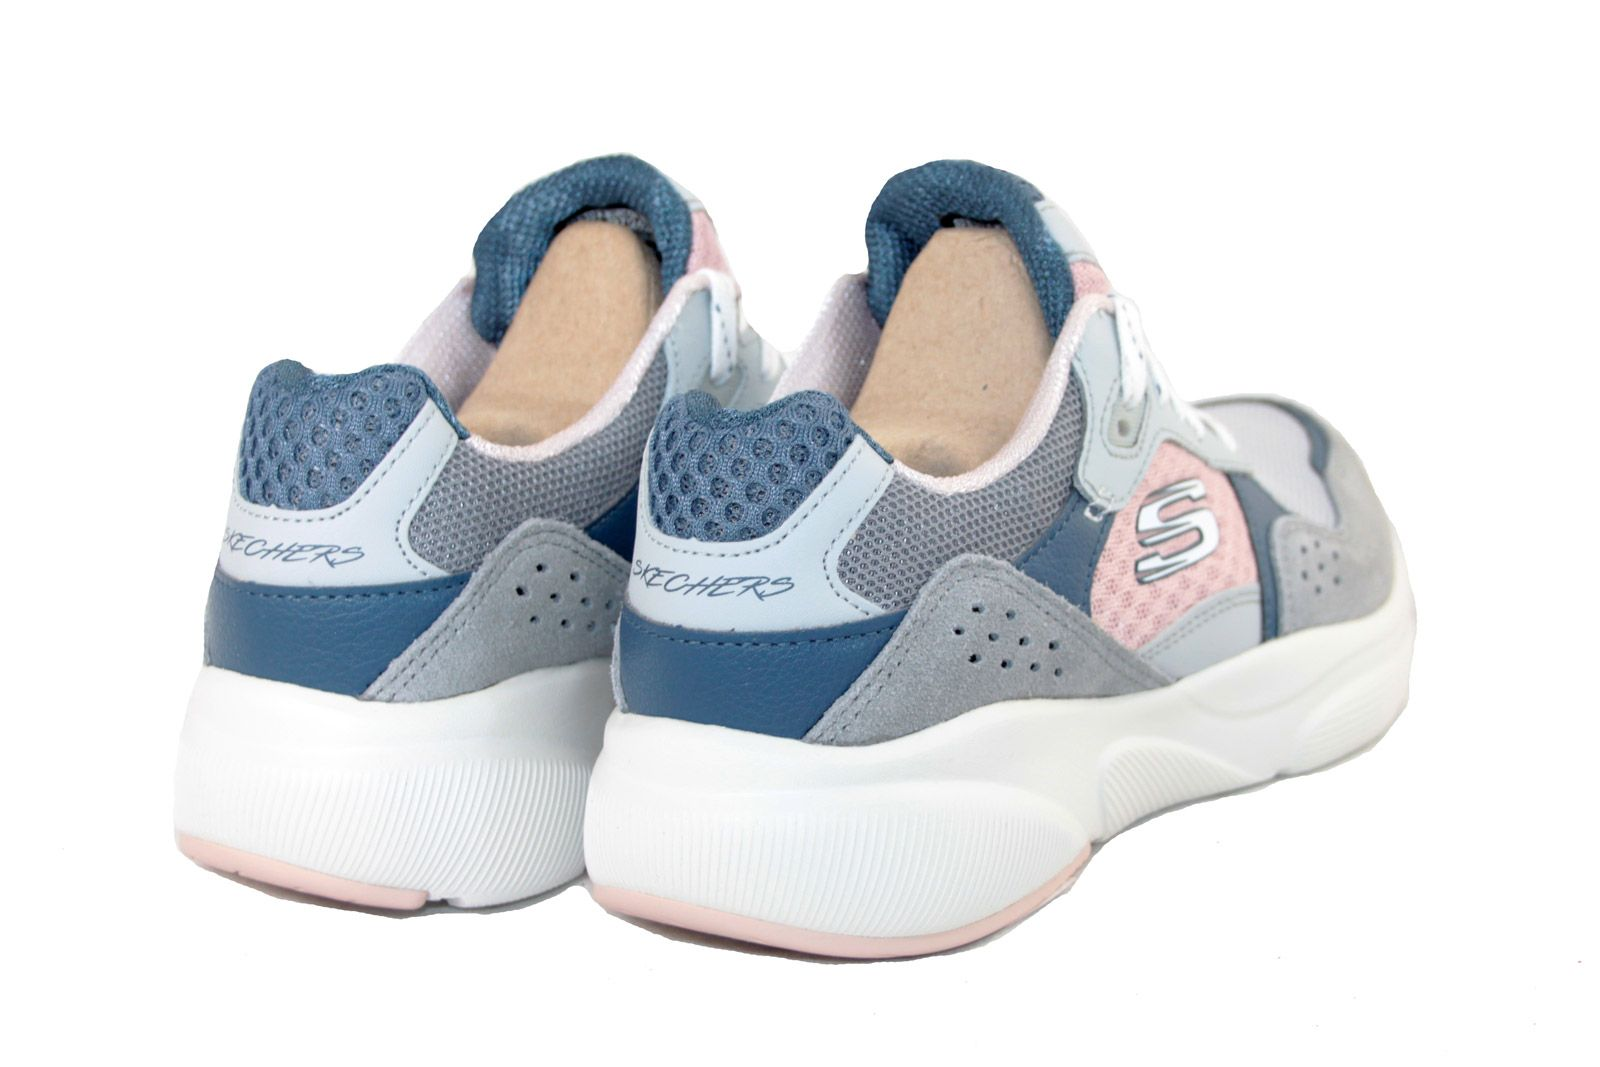 sala Facilitar lapso  Skechers 13019 Meridian Charted Grey/Pink | Skechers - Womens | China Blue  Shoes